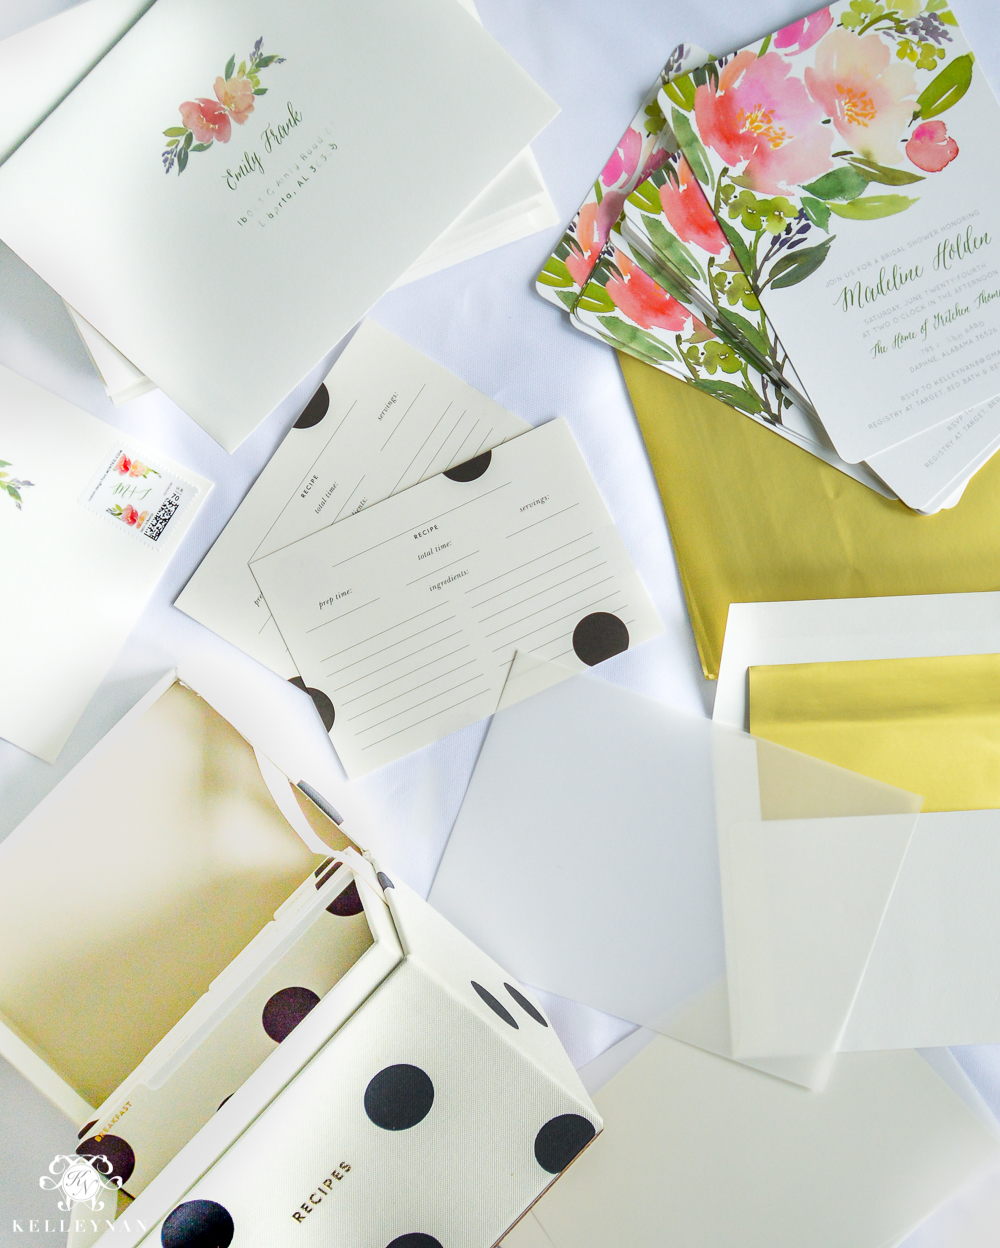 Bridal Shower Invitation Ideas with Recipe Cards- floral adn polka dot theme for garden party